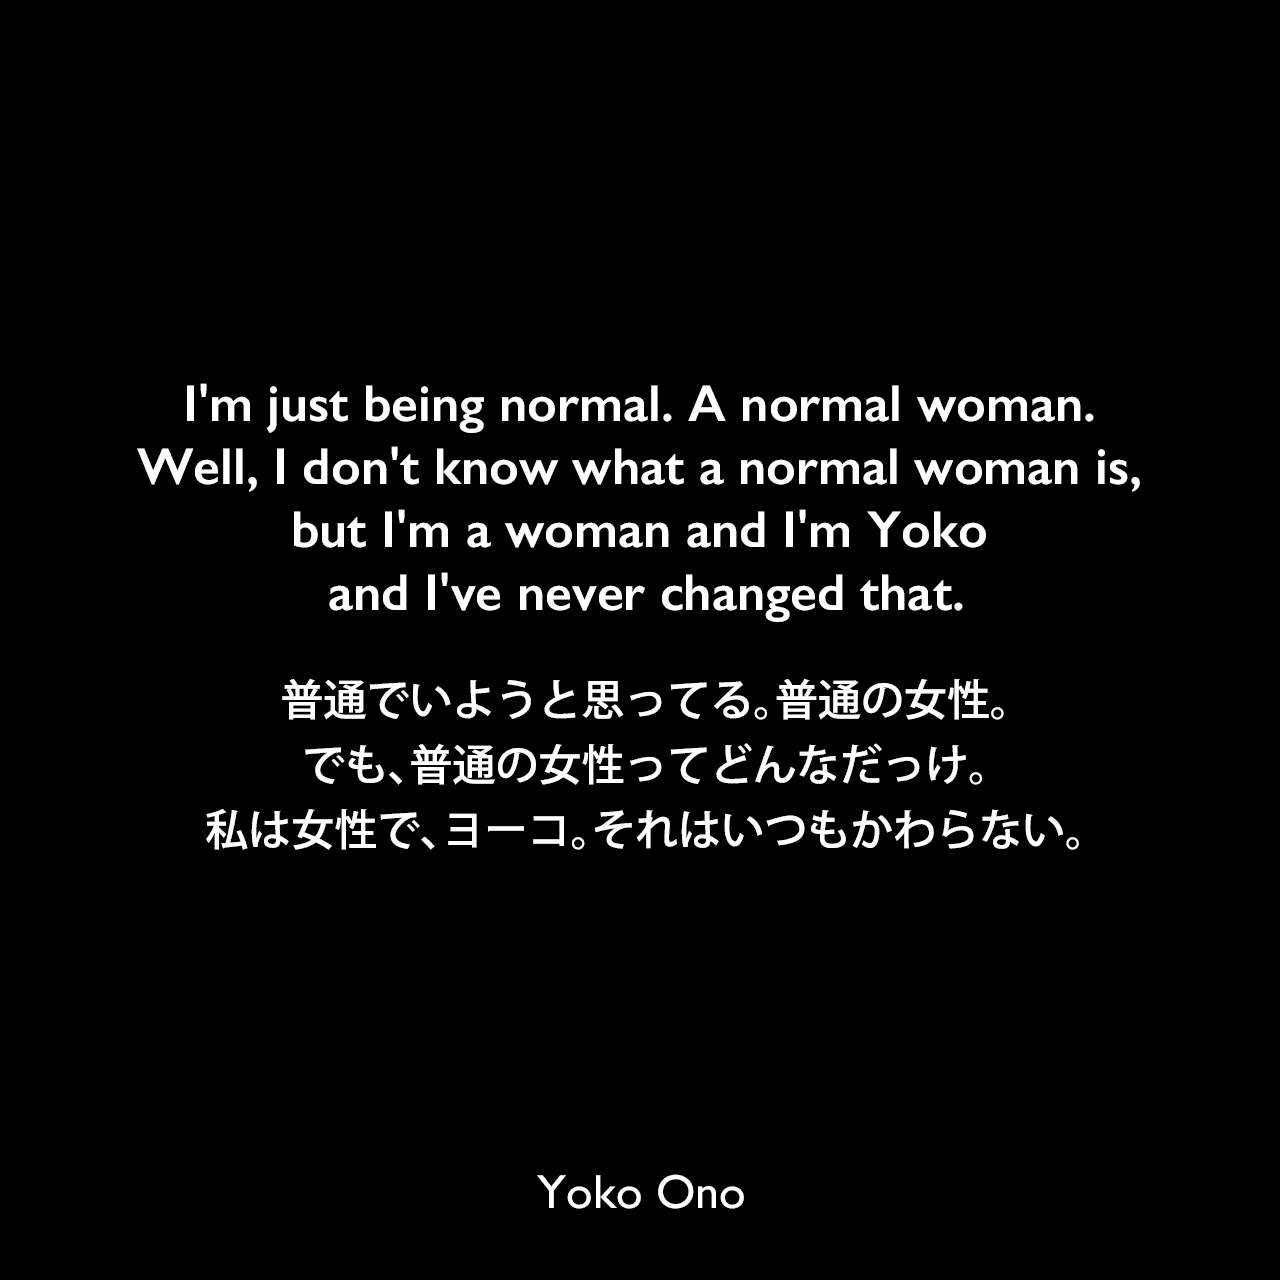 I'm just being normal. A normal woman. Well, I don't know what a normal woman is, but I'm a woman and I'm Yoko and I've never changed that.普通でいようと思ってる。普通の女性。でも、普通の女性ってどんなだっけ。私は女性で、ヨーコ。それはいつもかわらない。Yoko Ono